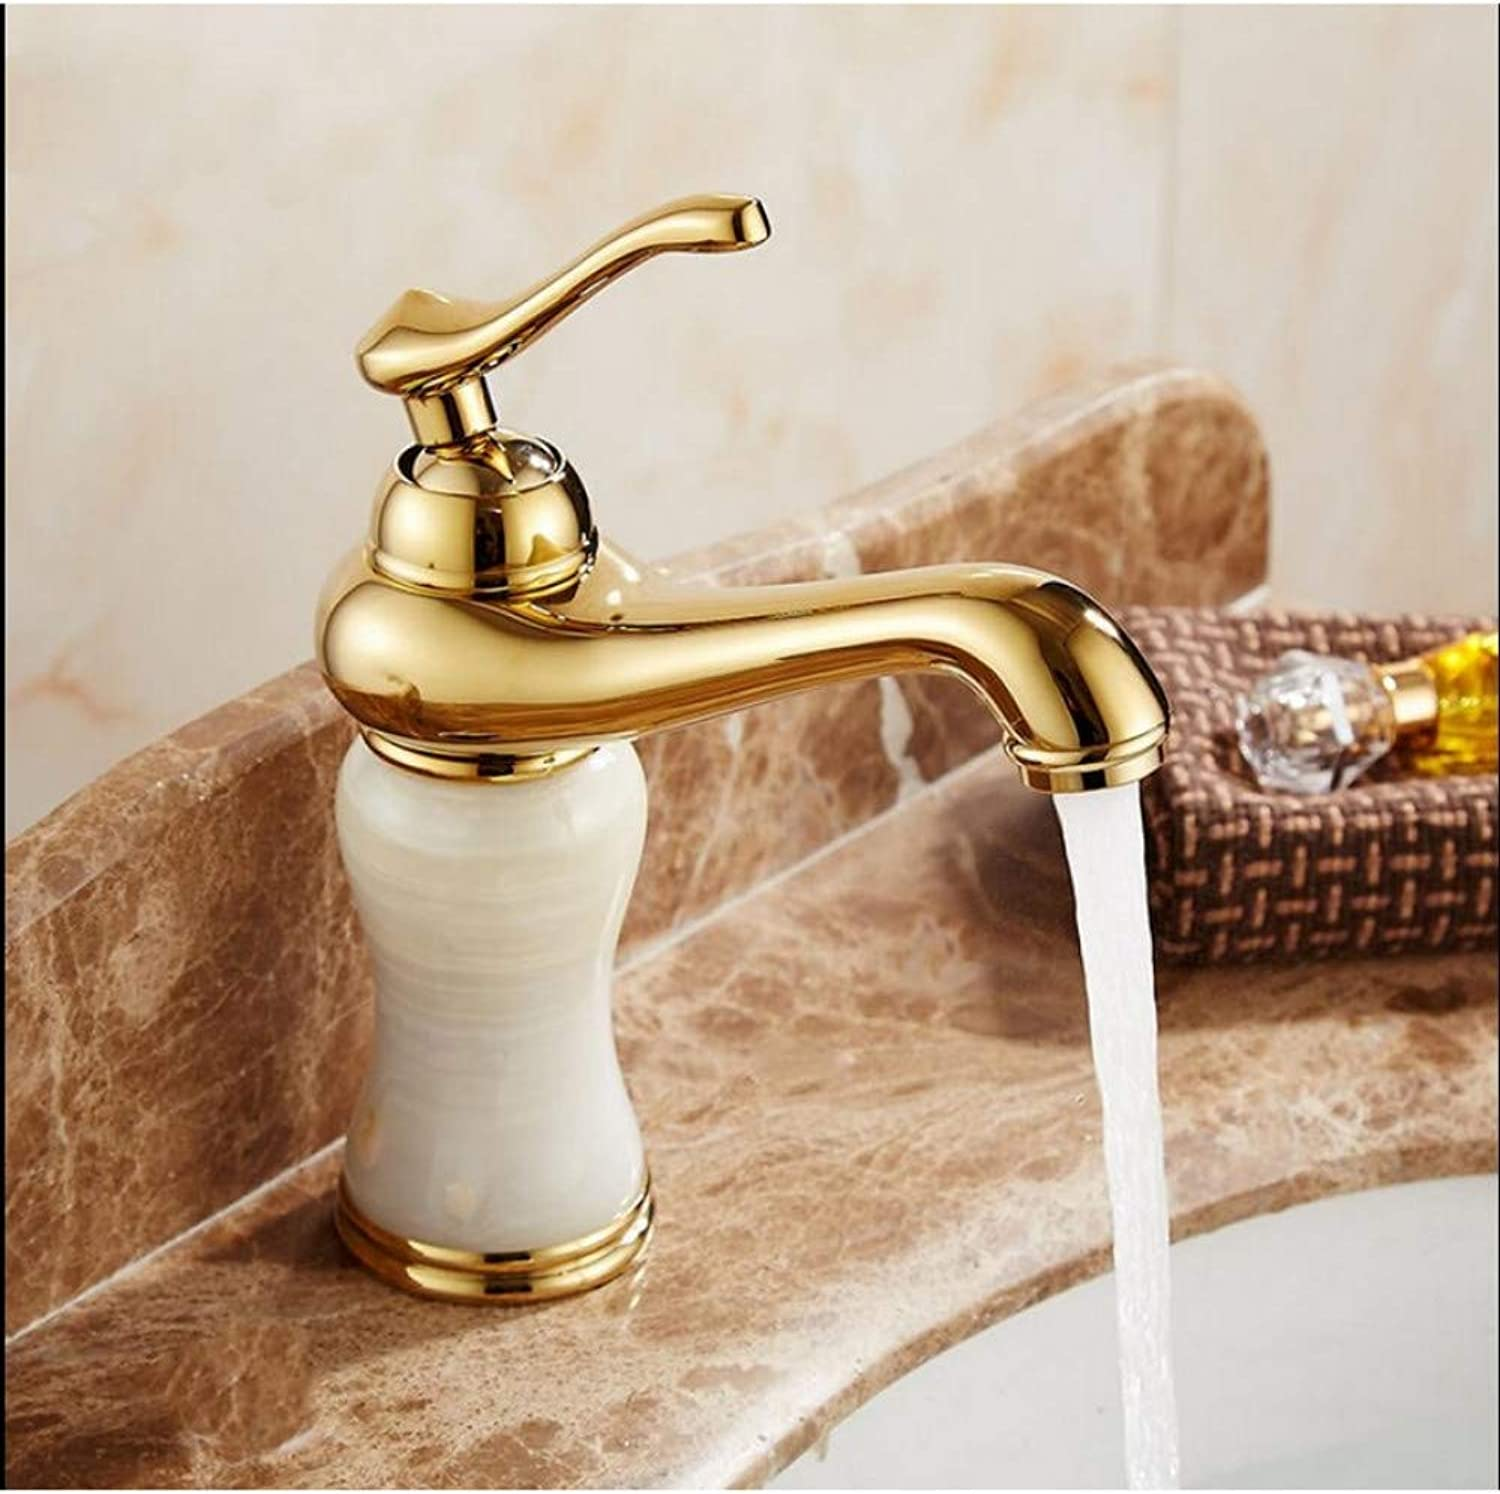 Lddpl Fashion High Quality Solid Brass and Natural Jade Construction Bathroom Hot and Cold gold Finish Basin Faucet,Tap Sink Mixer